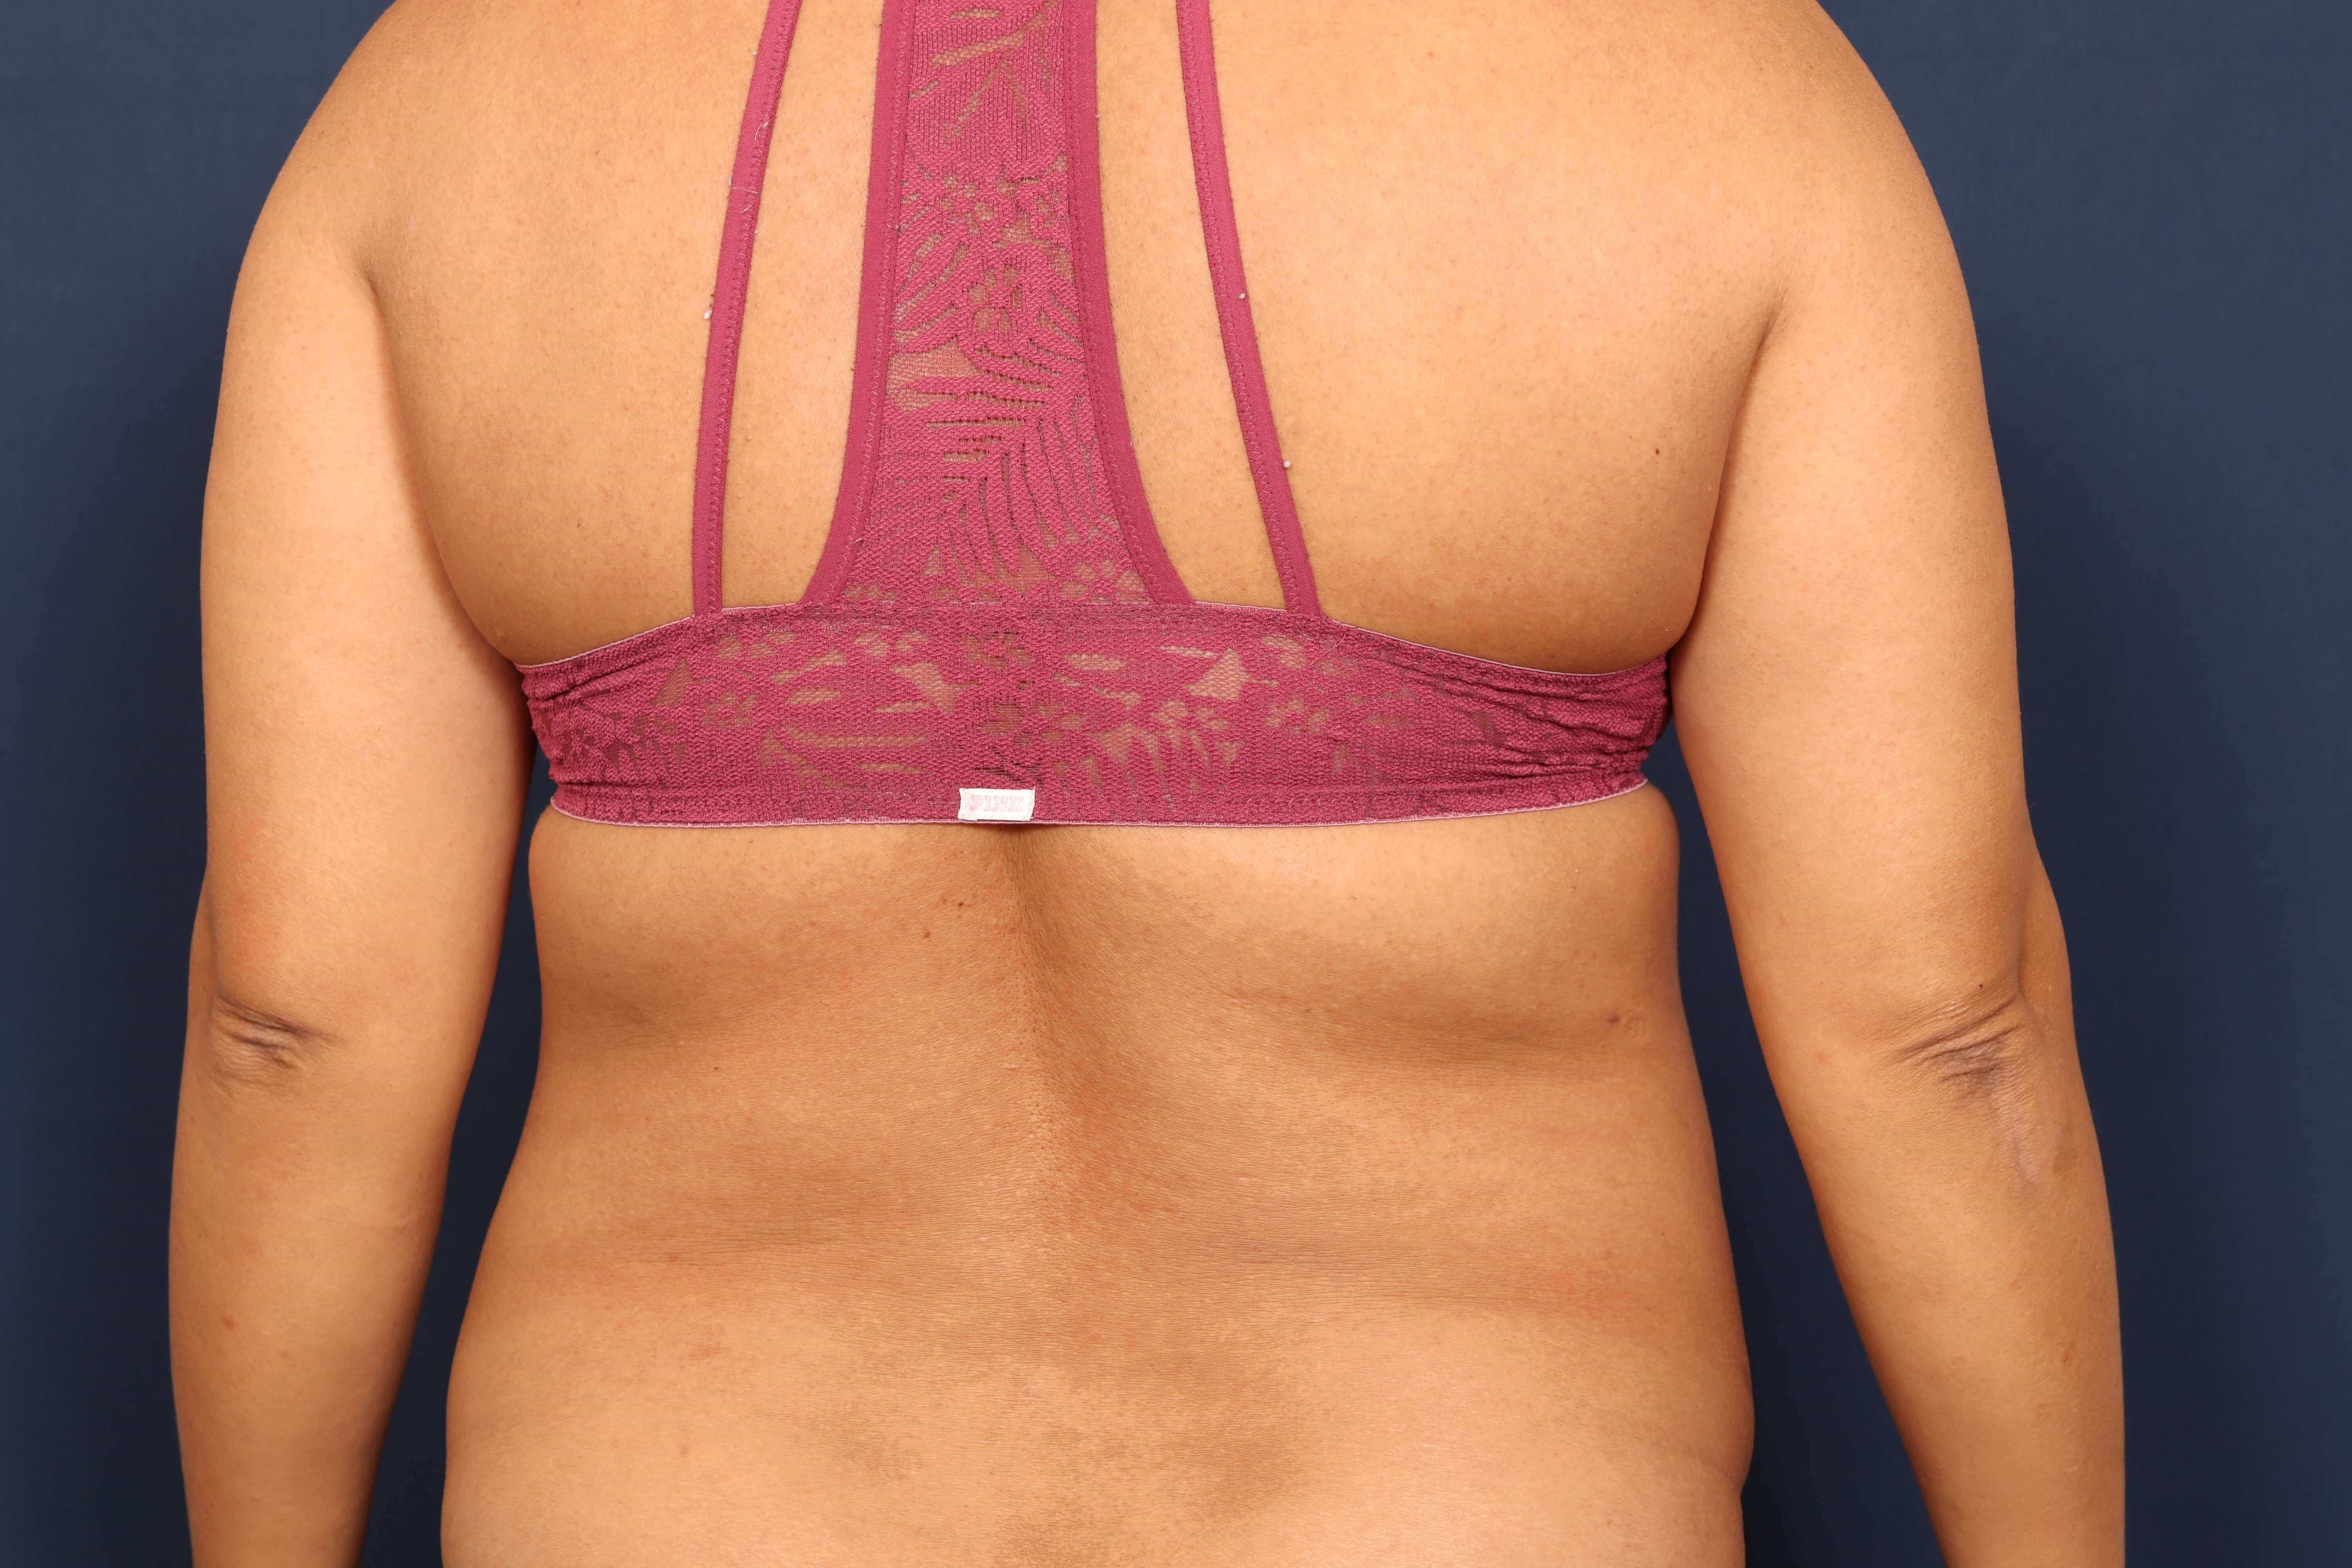 Liposuction of Back and Hips Before